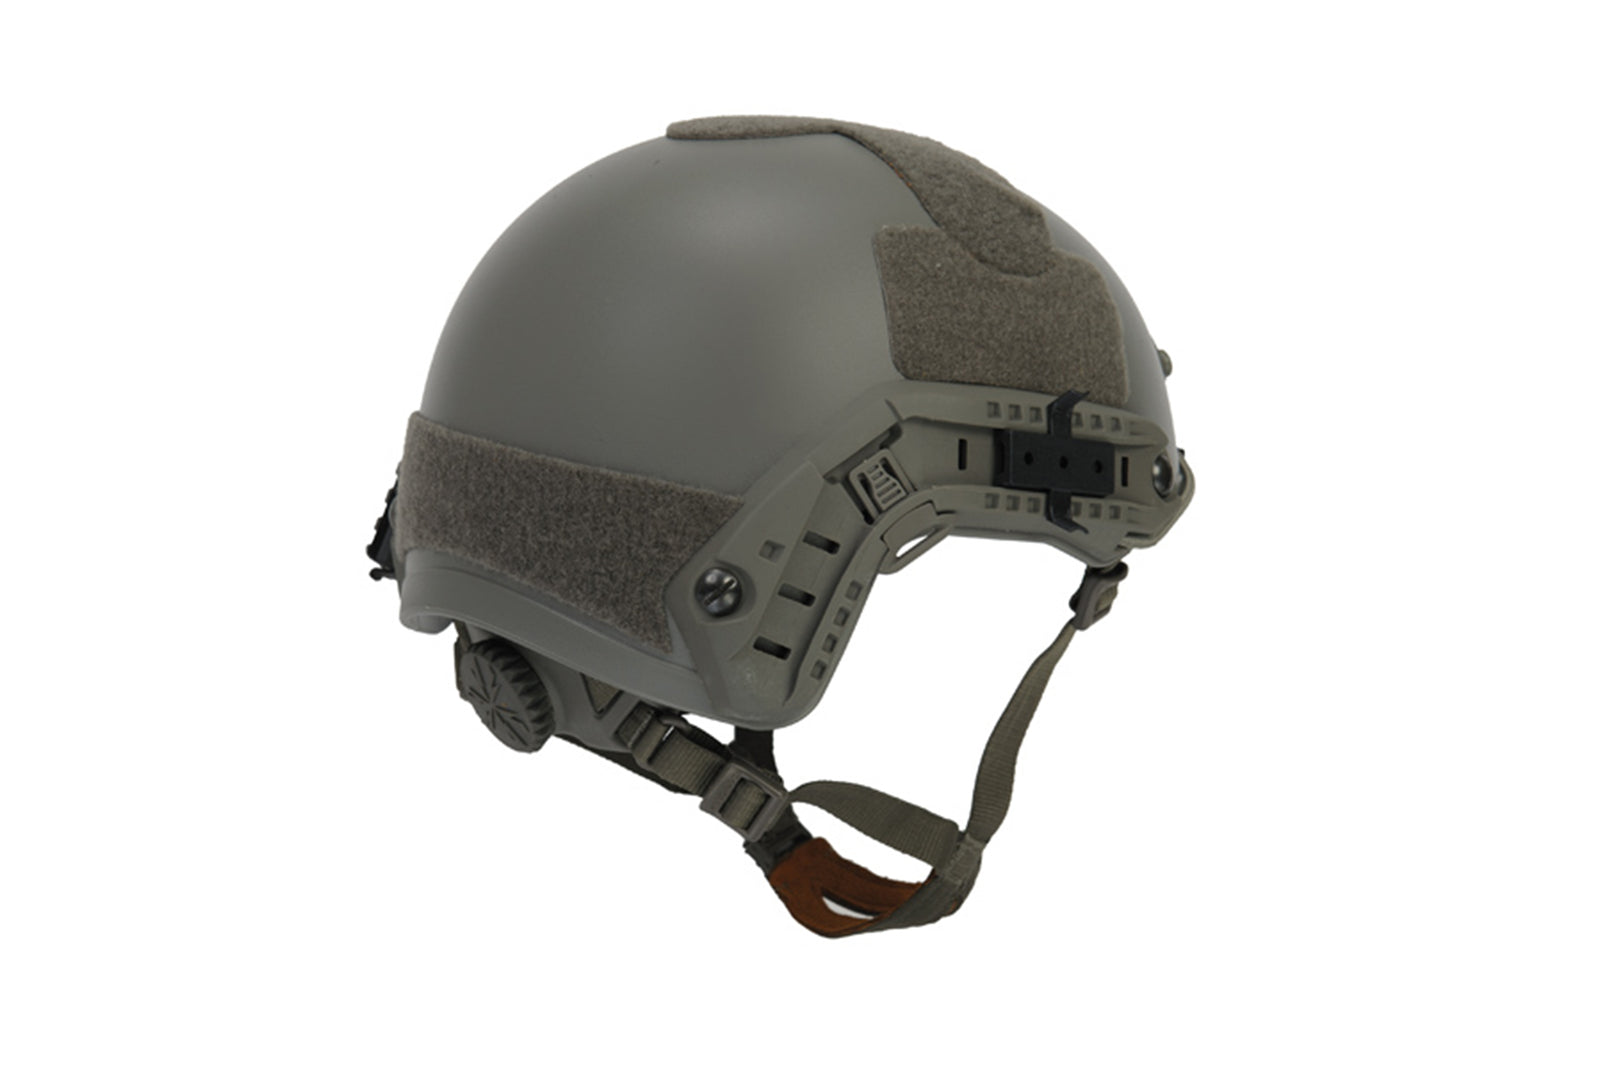 Lancer Tactical HELMET BALLISTIC TYPE CA-726G (COLOR: FOLIAGE GREEN) (LG/XL)